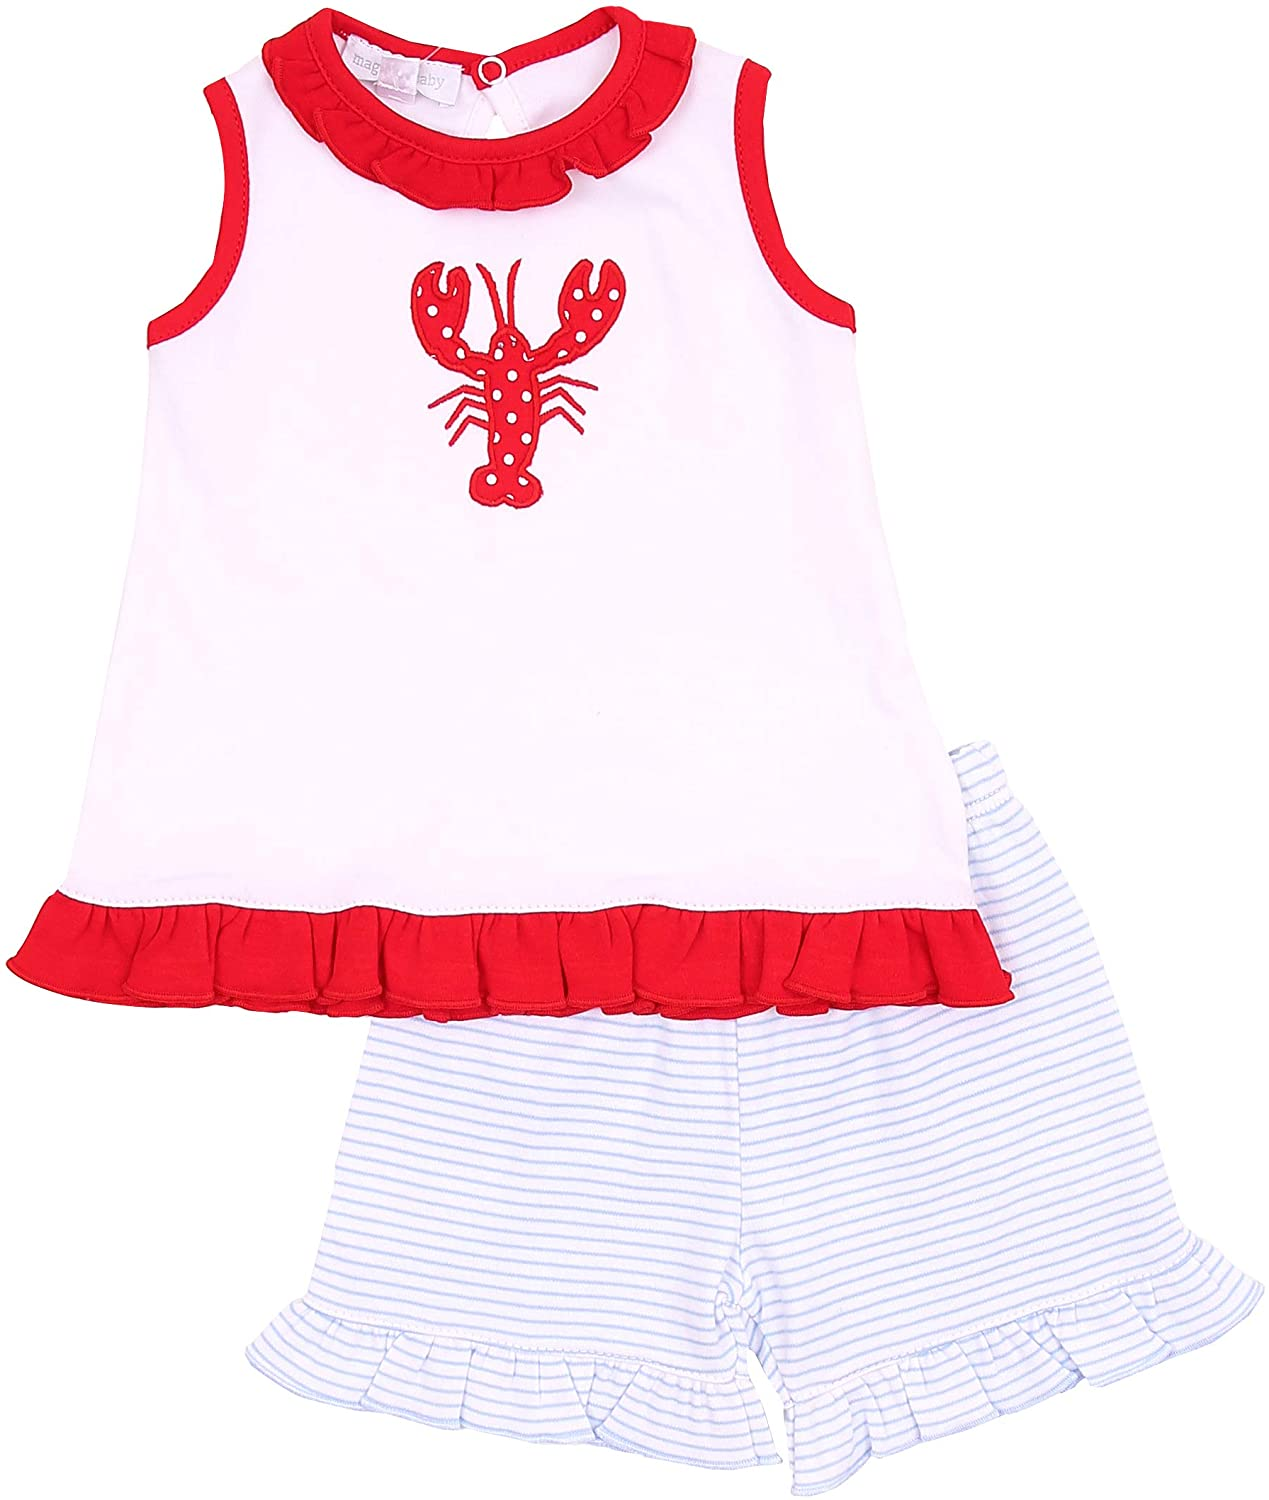 Magnolia Baby Unisex Baby Snappy The Lobster Applique Ruffle Short Set Red